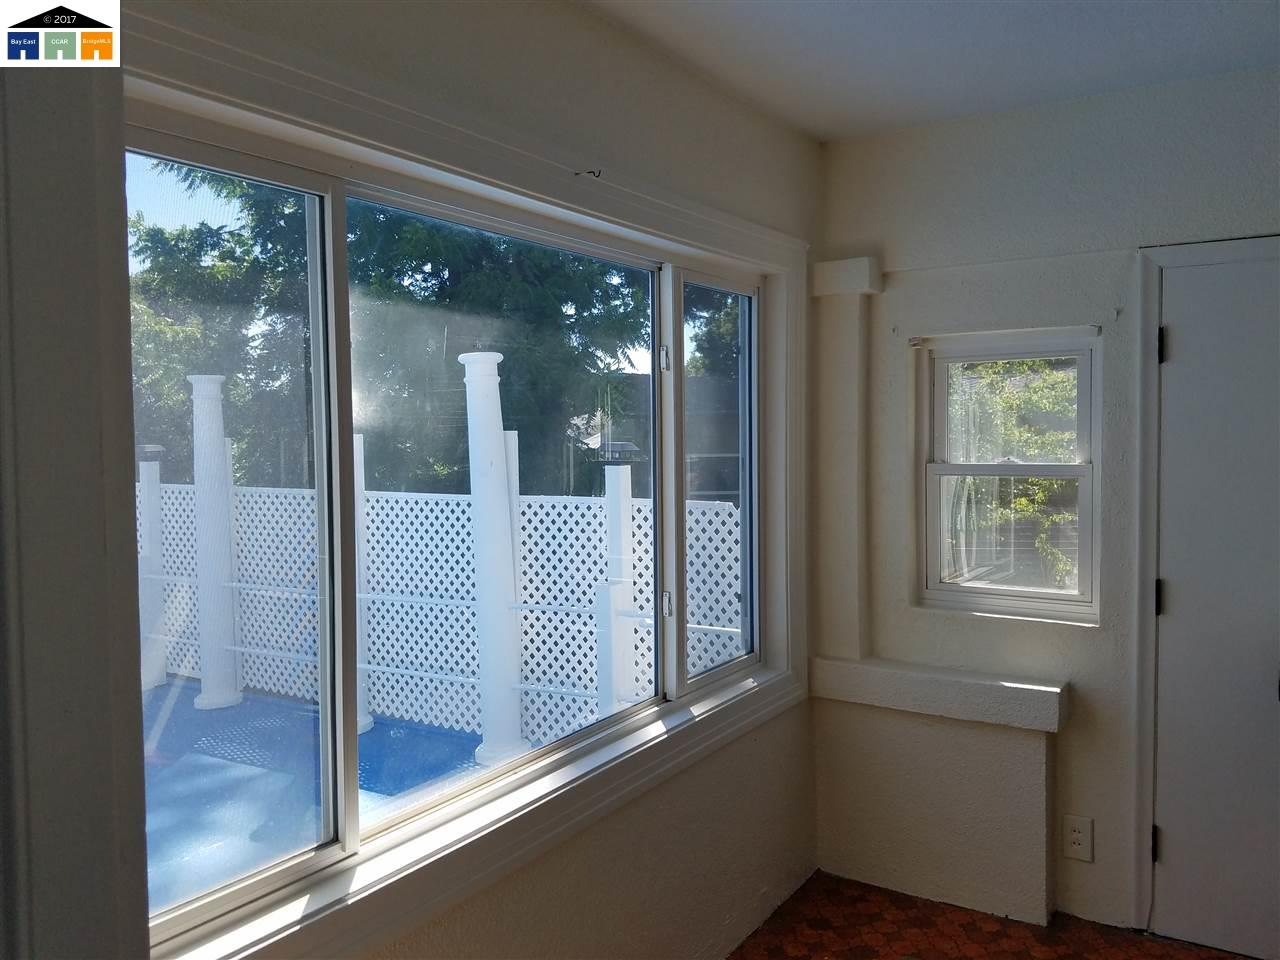 Additional photo for property listing at 3026 Guido Street 3026 Guido Street Oakland, California 94602 United States